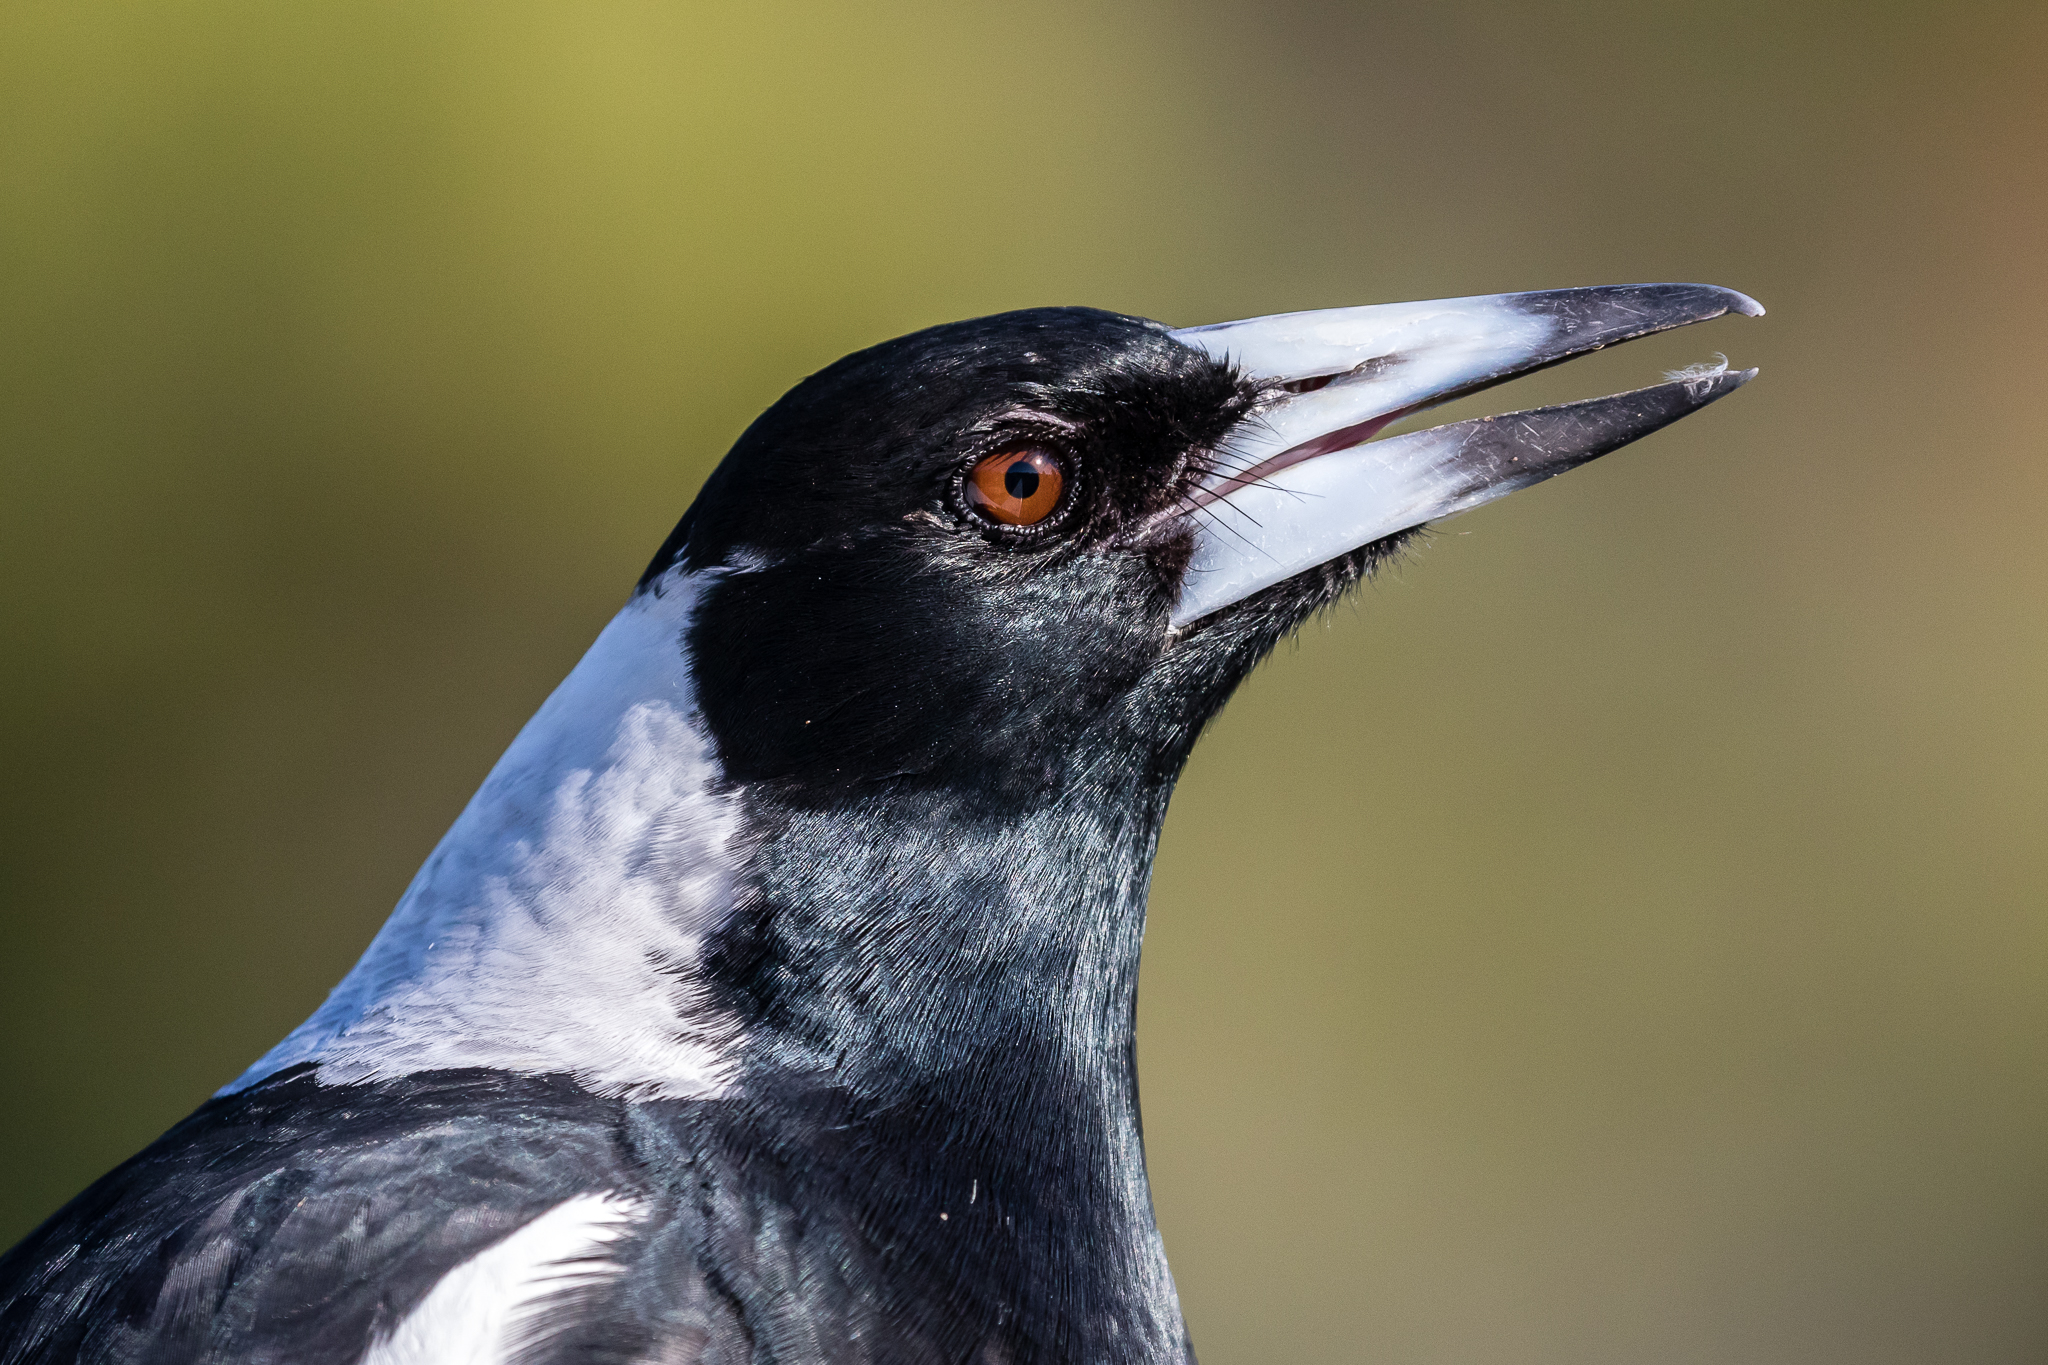 In third place was the Australian Magpie, common in cities and the bush. Magpies prefer open spaces with large trees (city parks) feeding mainly on grubs and insects.